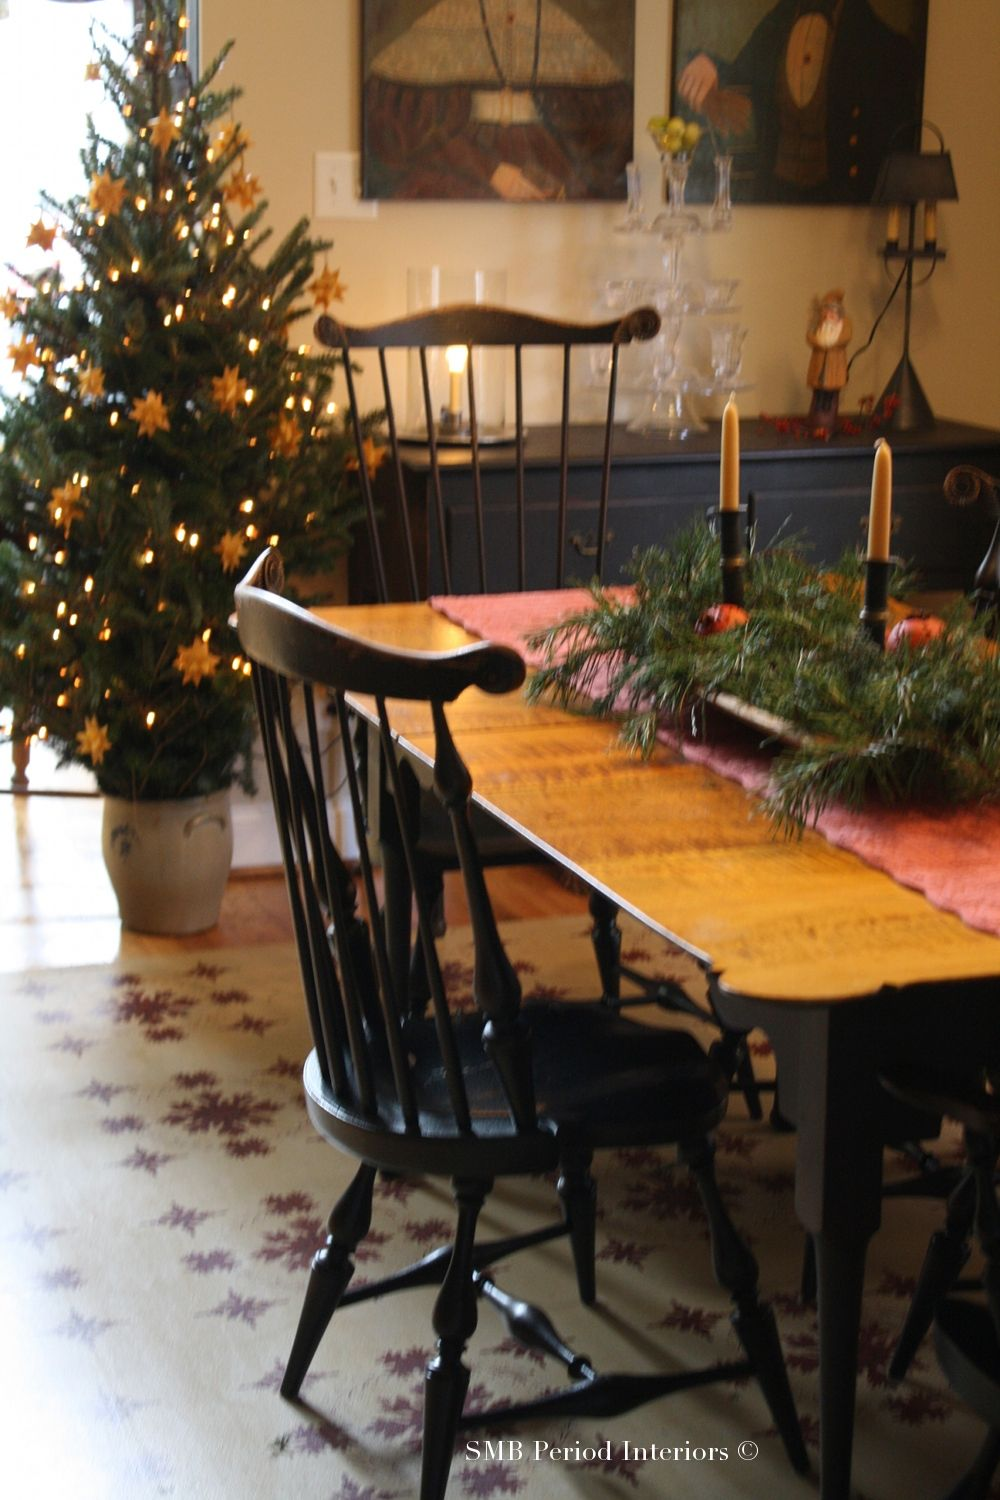 COLONIAL DECORATING WITH GREENERY AND CITRUS AT CHRISTMAS ...